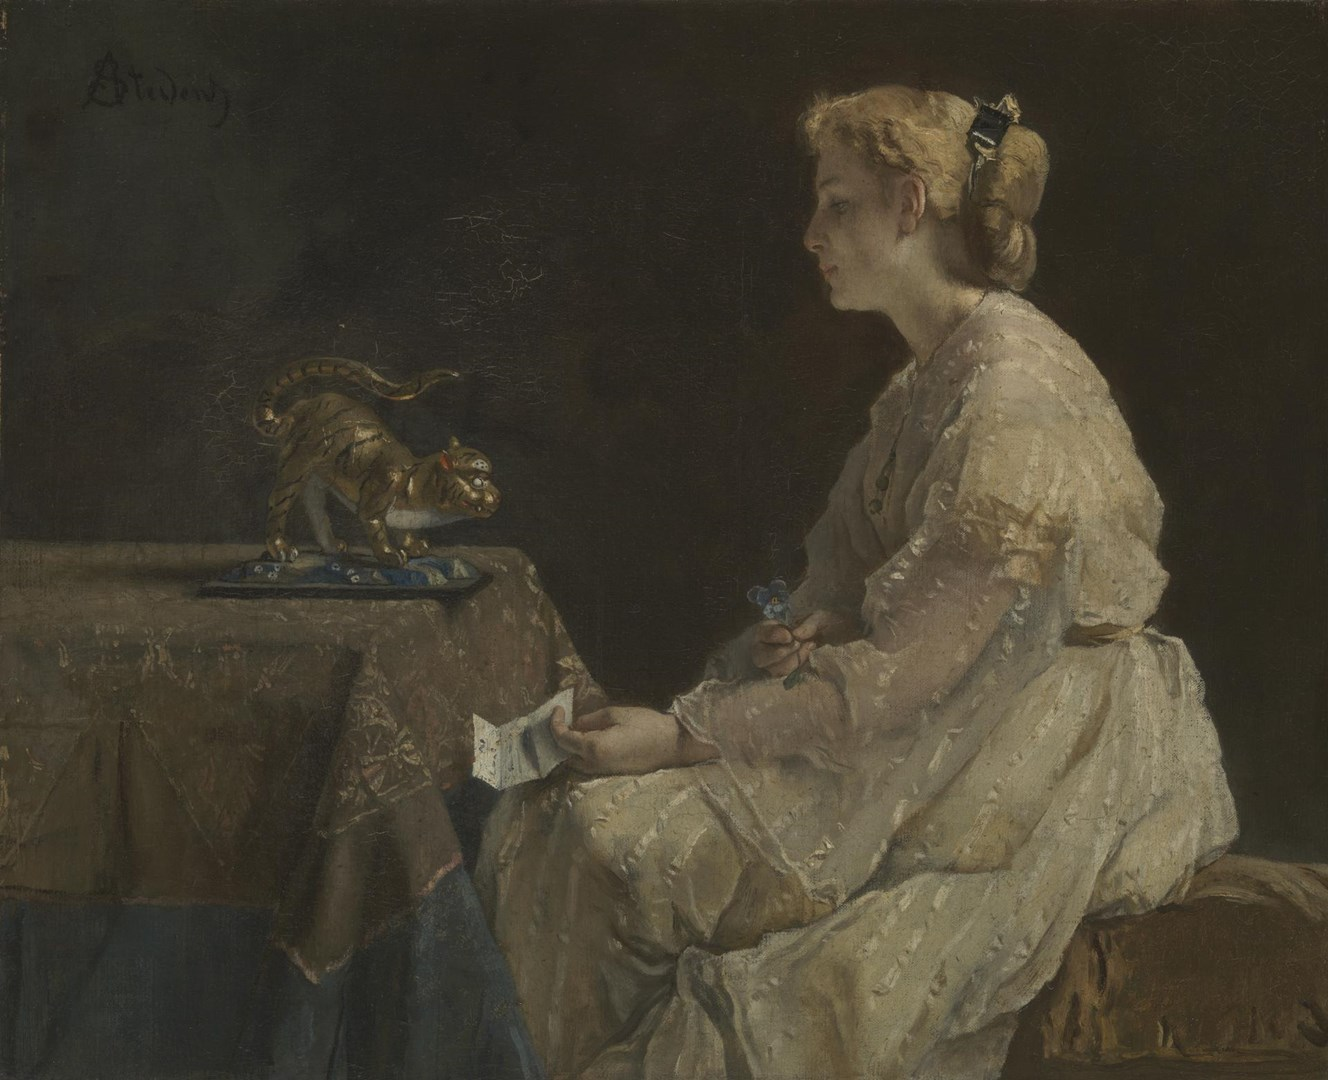 The Present by Alfred Stevens